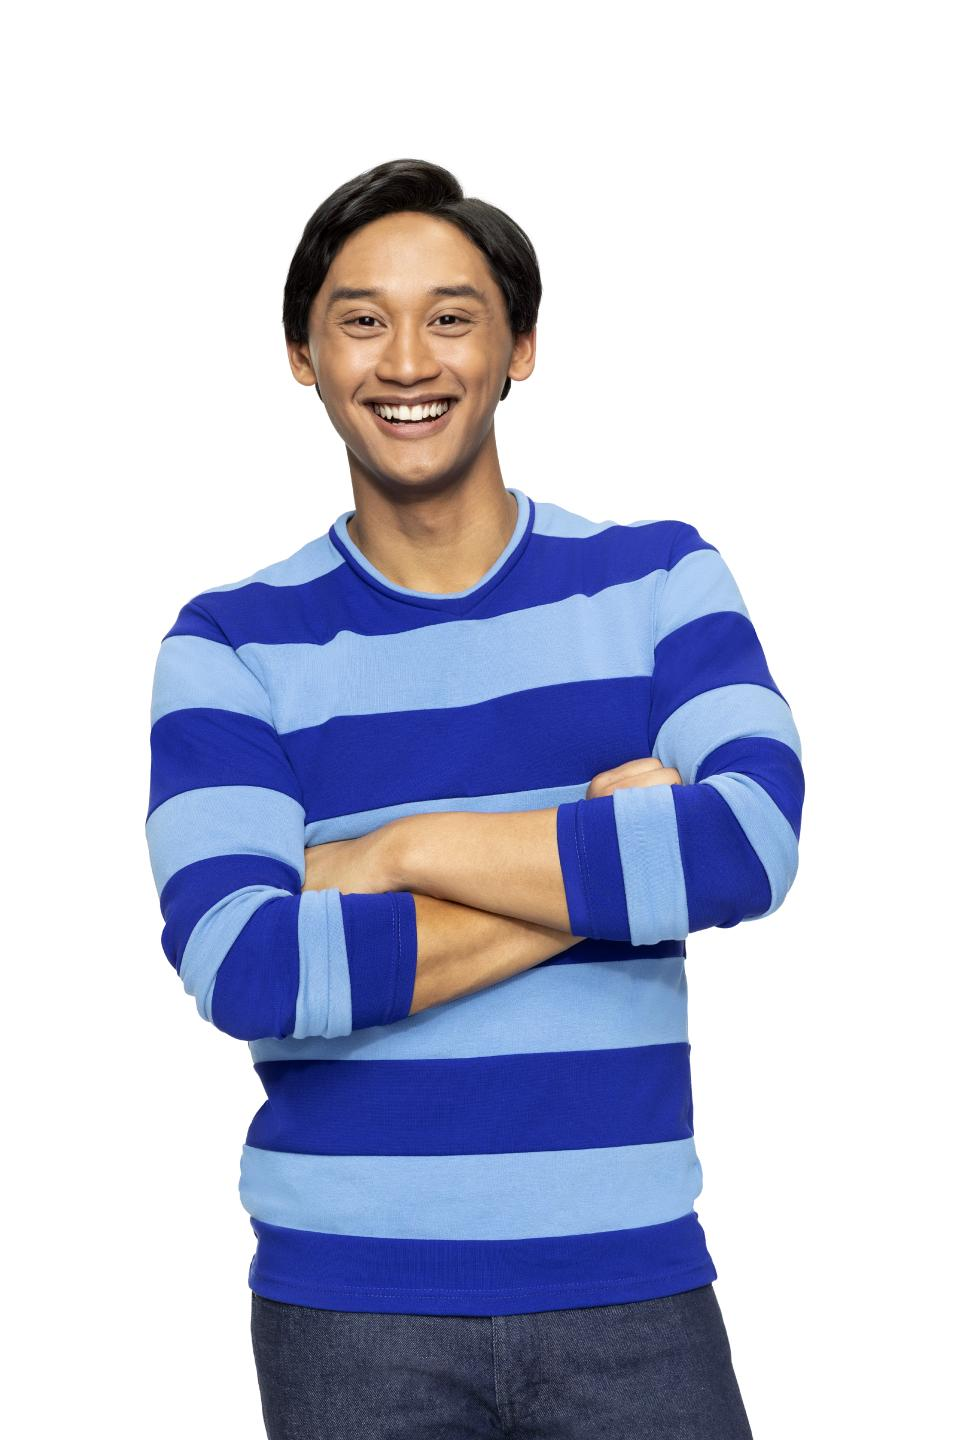 Interview with Josh Dela Cruz Host of Blue's Clues & You!